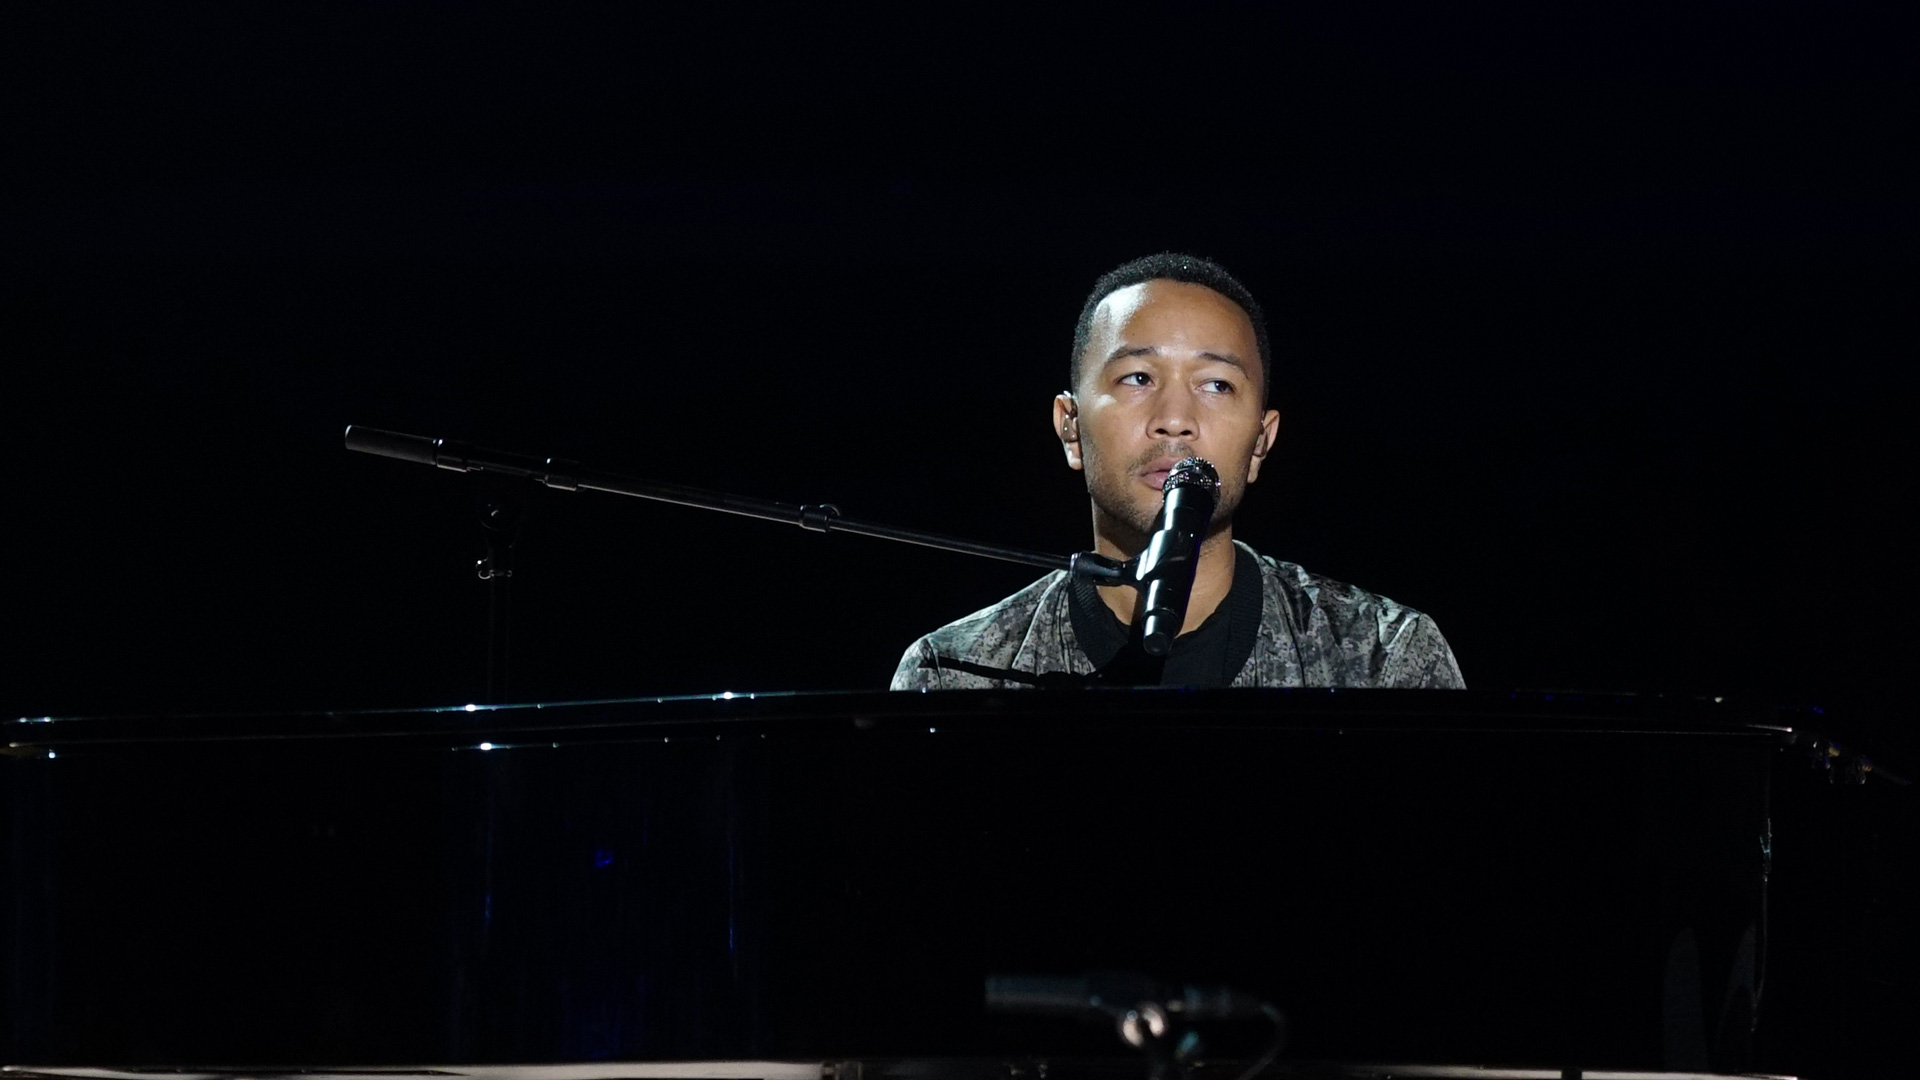 Soulful singer John Legend sits at his piano to practice before his special 2017 GRAMMY performance.